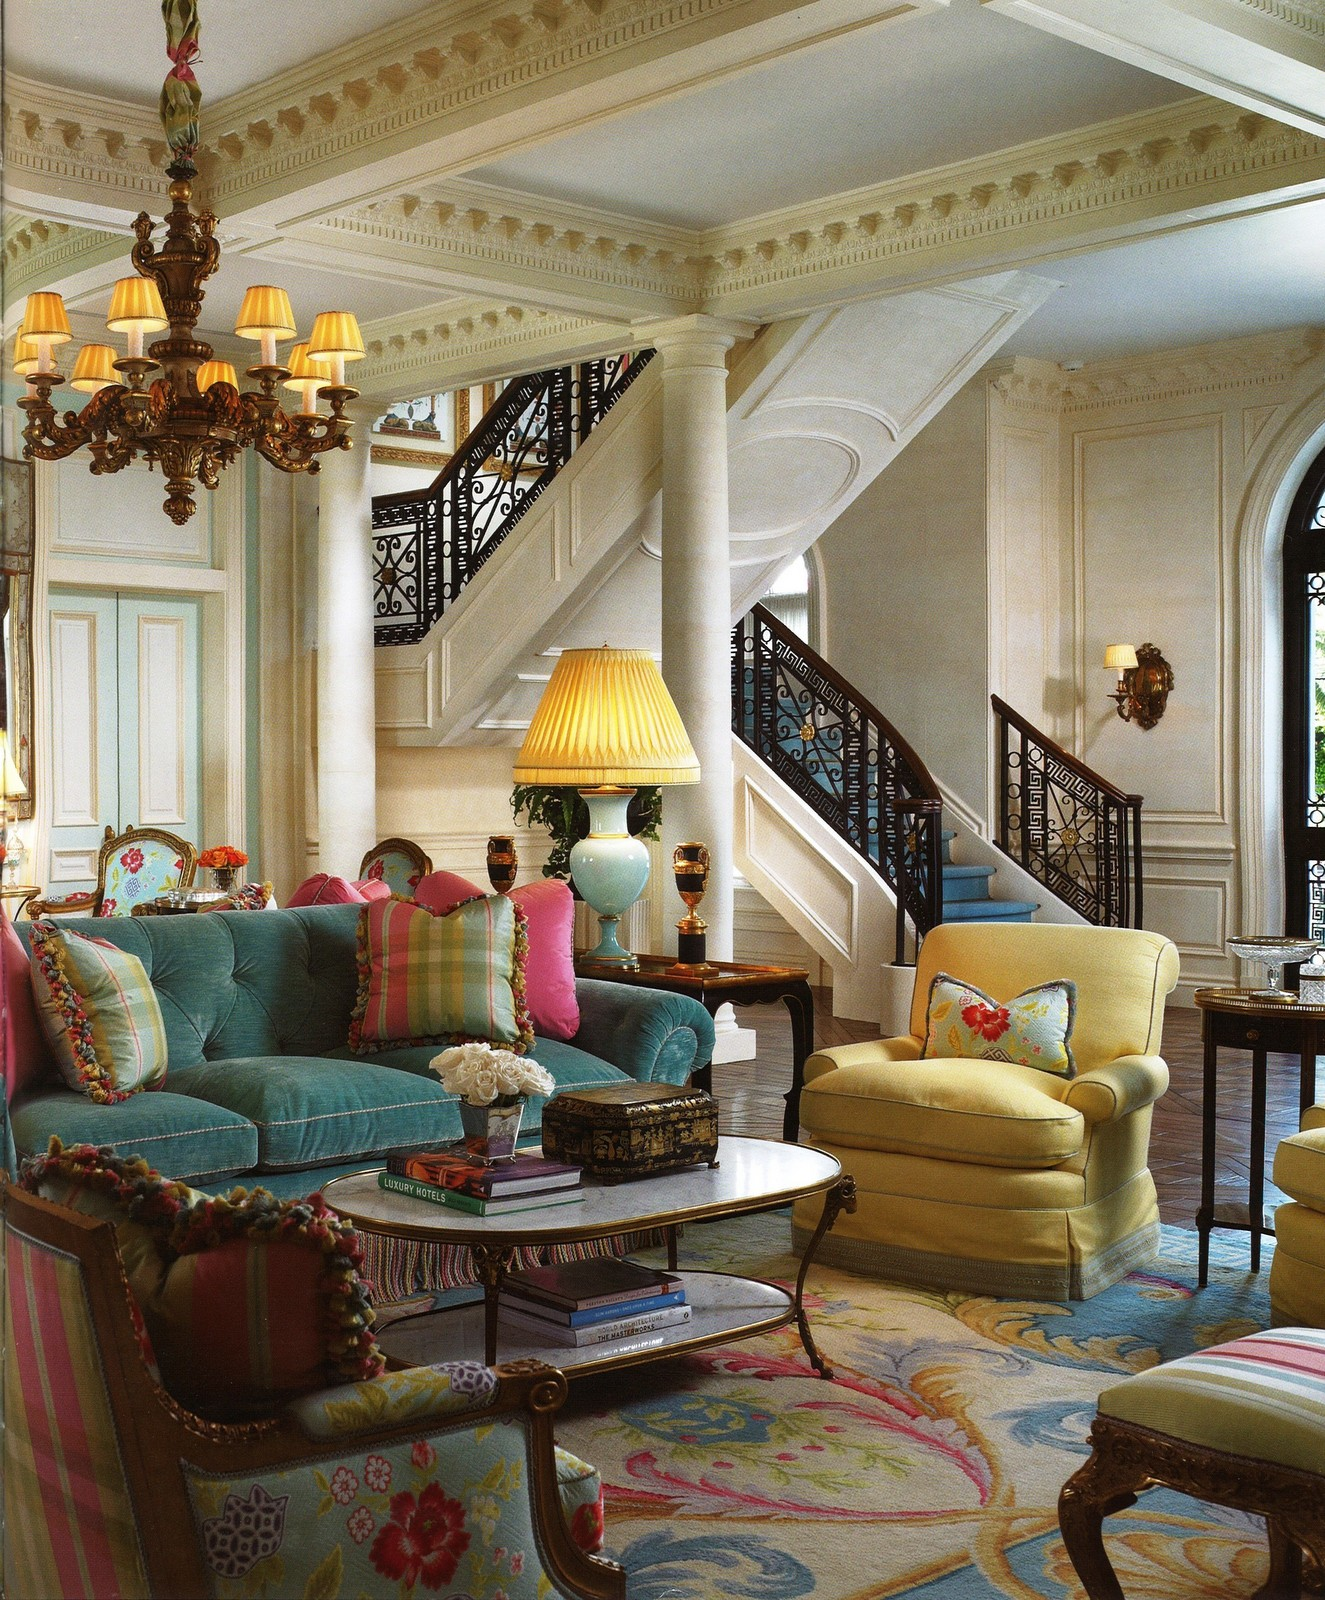 Glamorous Spaces :: Stately Homes: Palm Beach Chic With